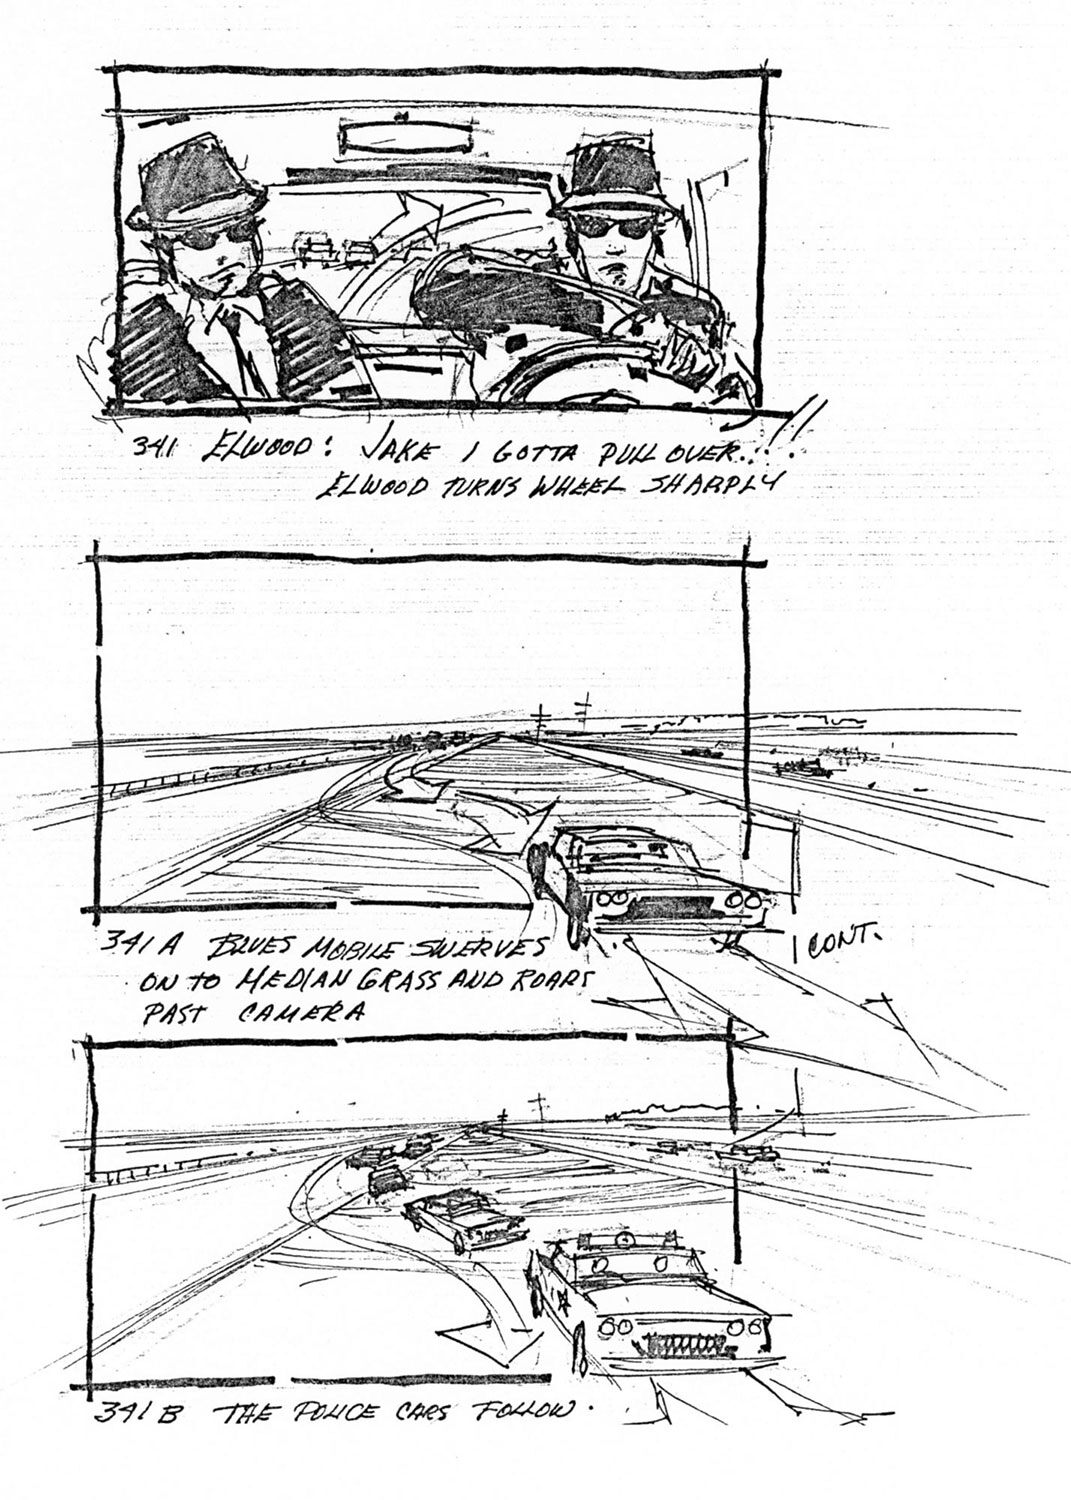 The elaborate car chases in The Blues Brothers were carefully storyboarded, and a 24-hour body shop was kept on site to repair damaged automobiles during shooting.